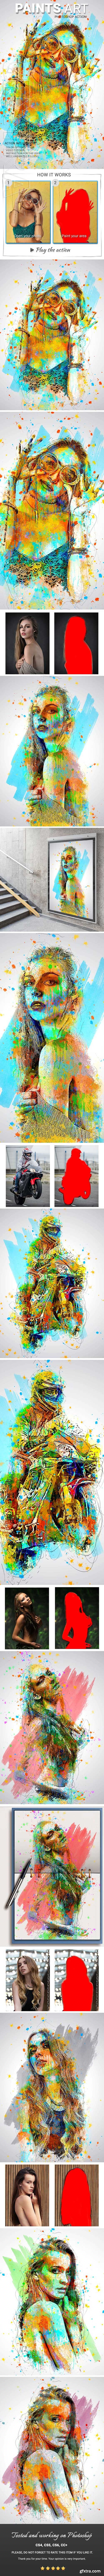 GraphicRiver - Paints Art Photoshop Action 22630125